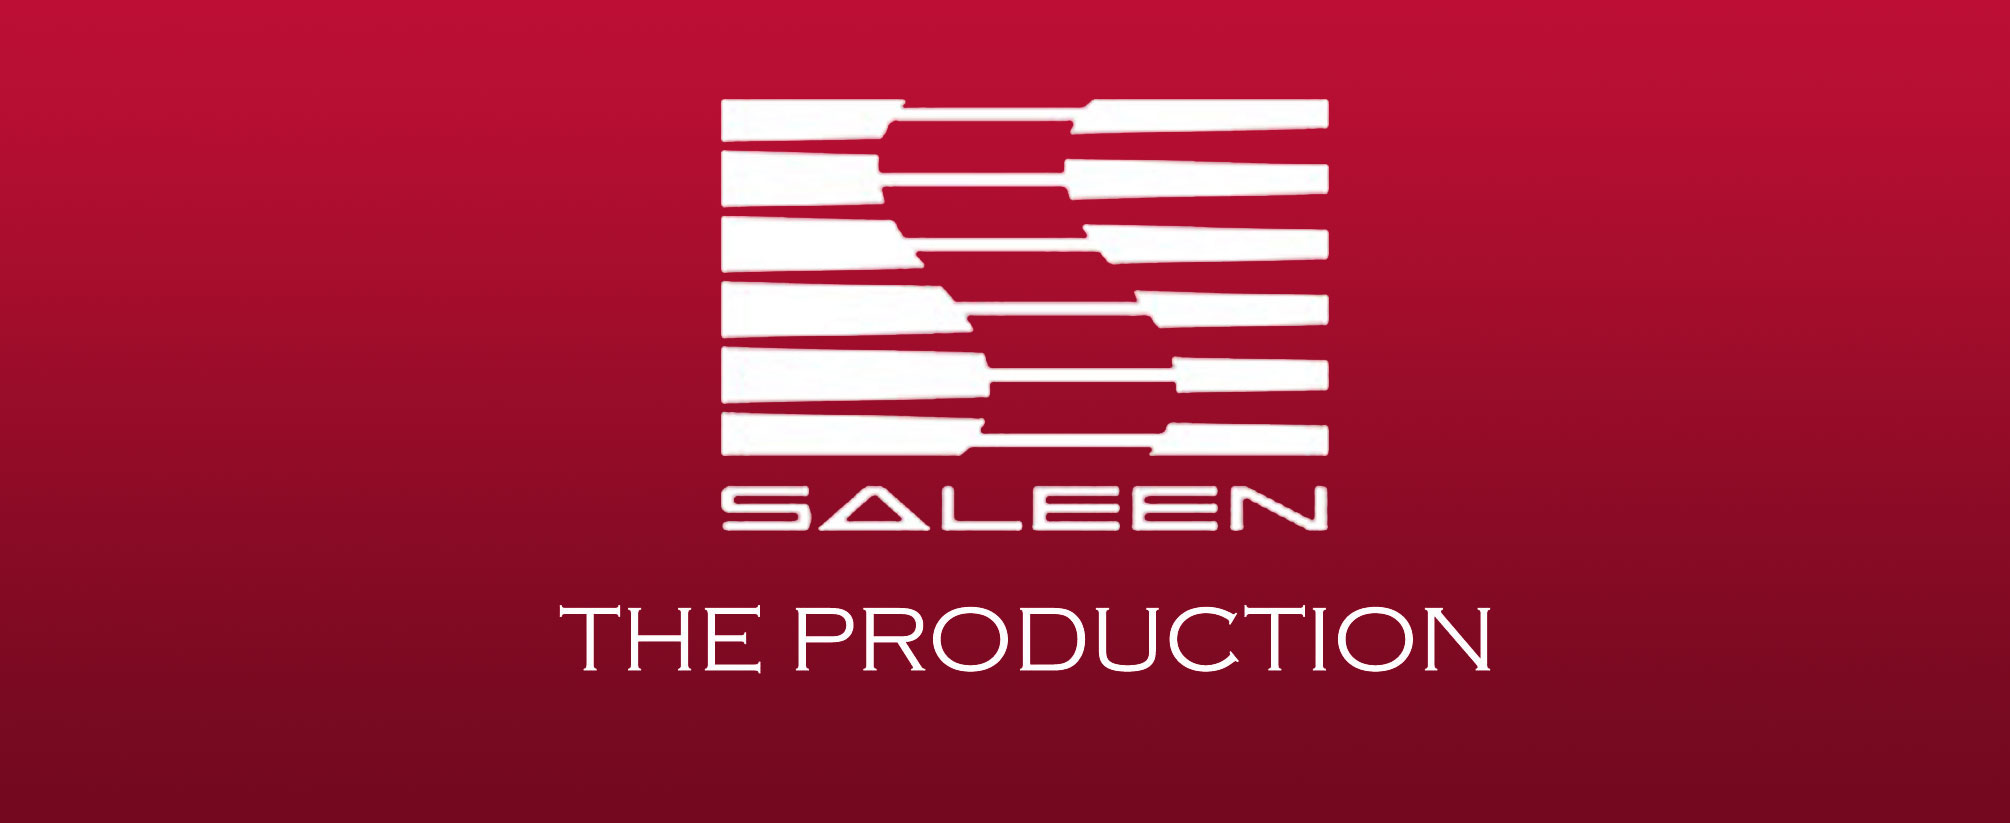 Saleen-the-production